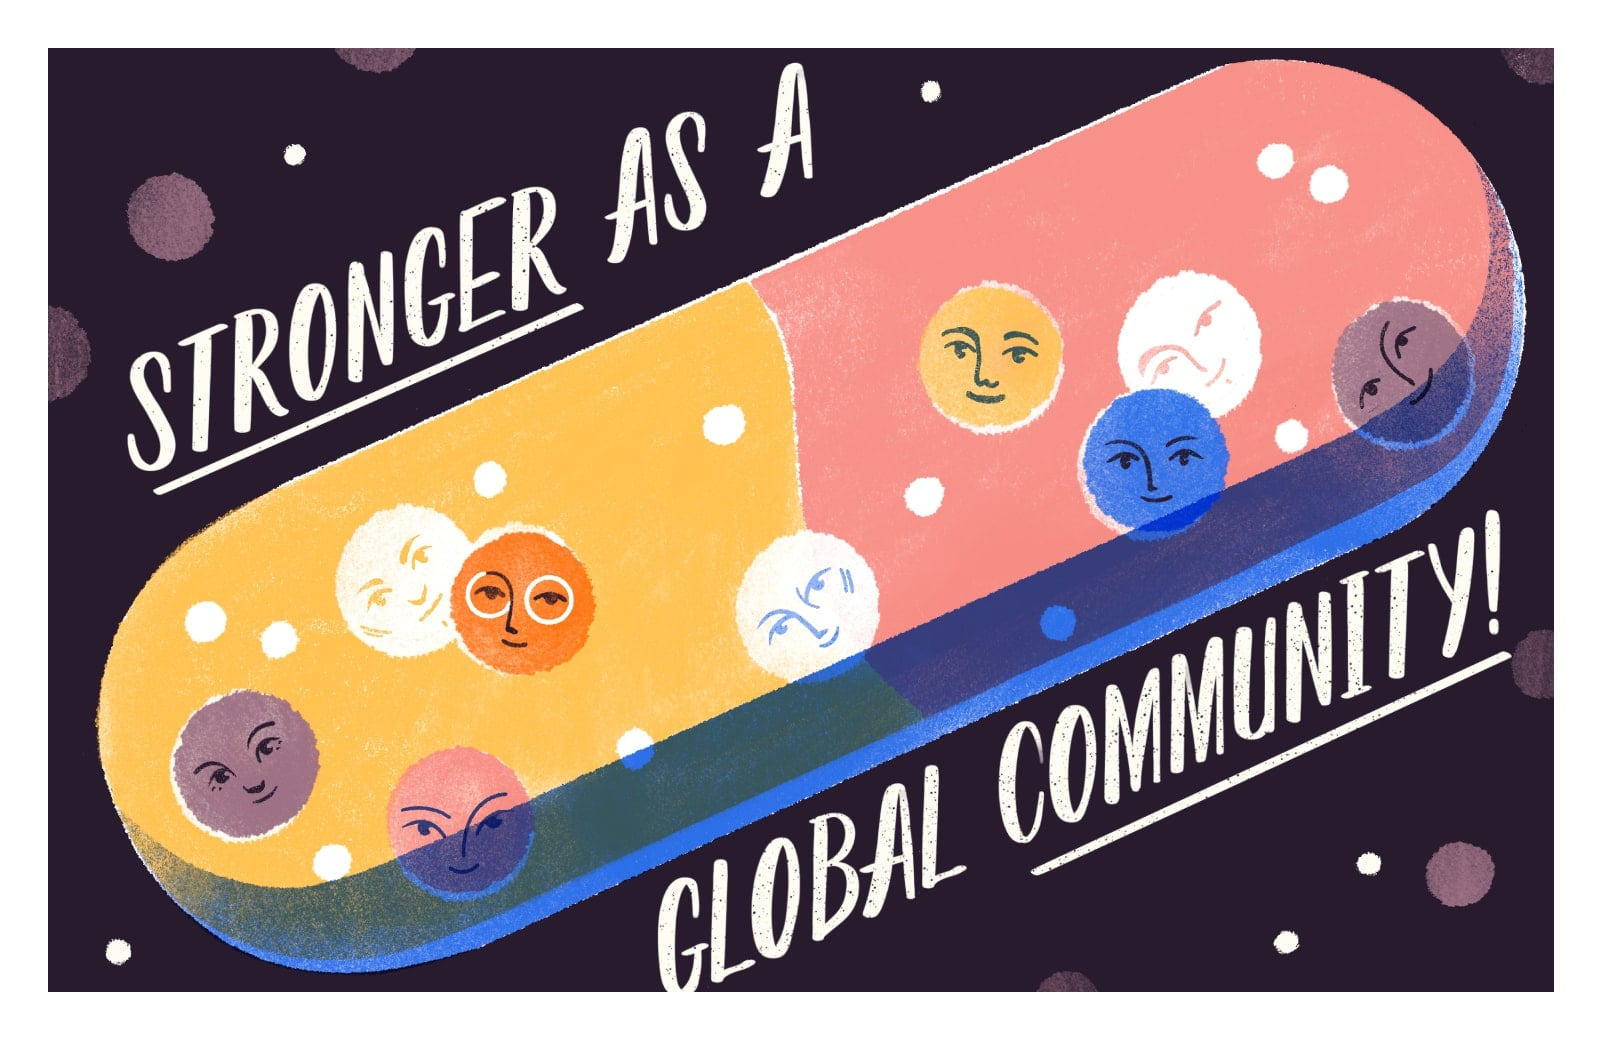 Stronger as a global community